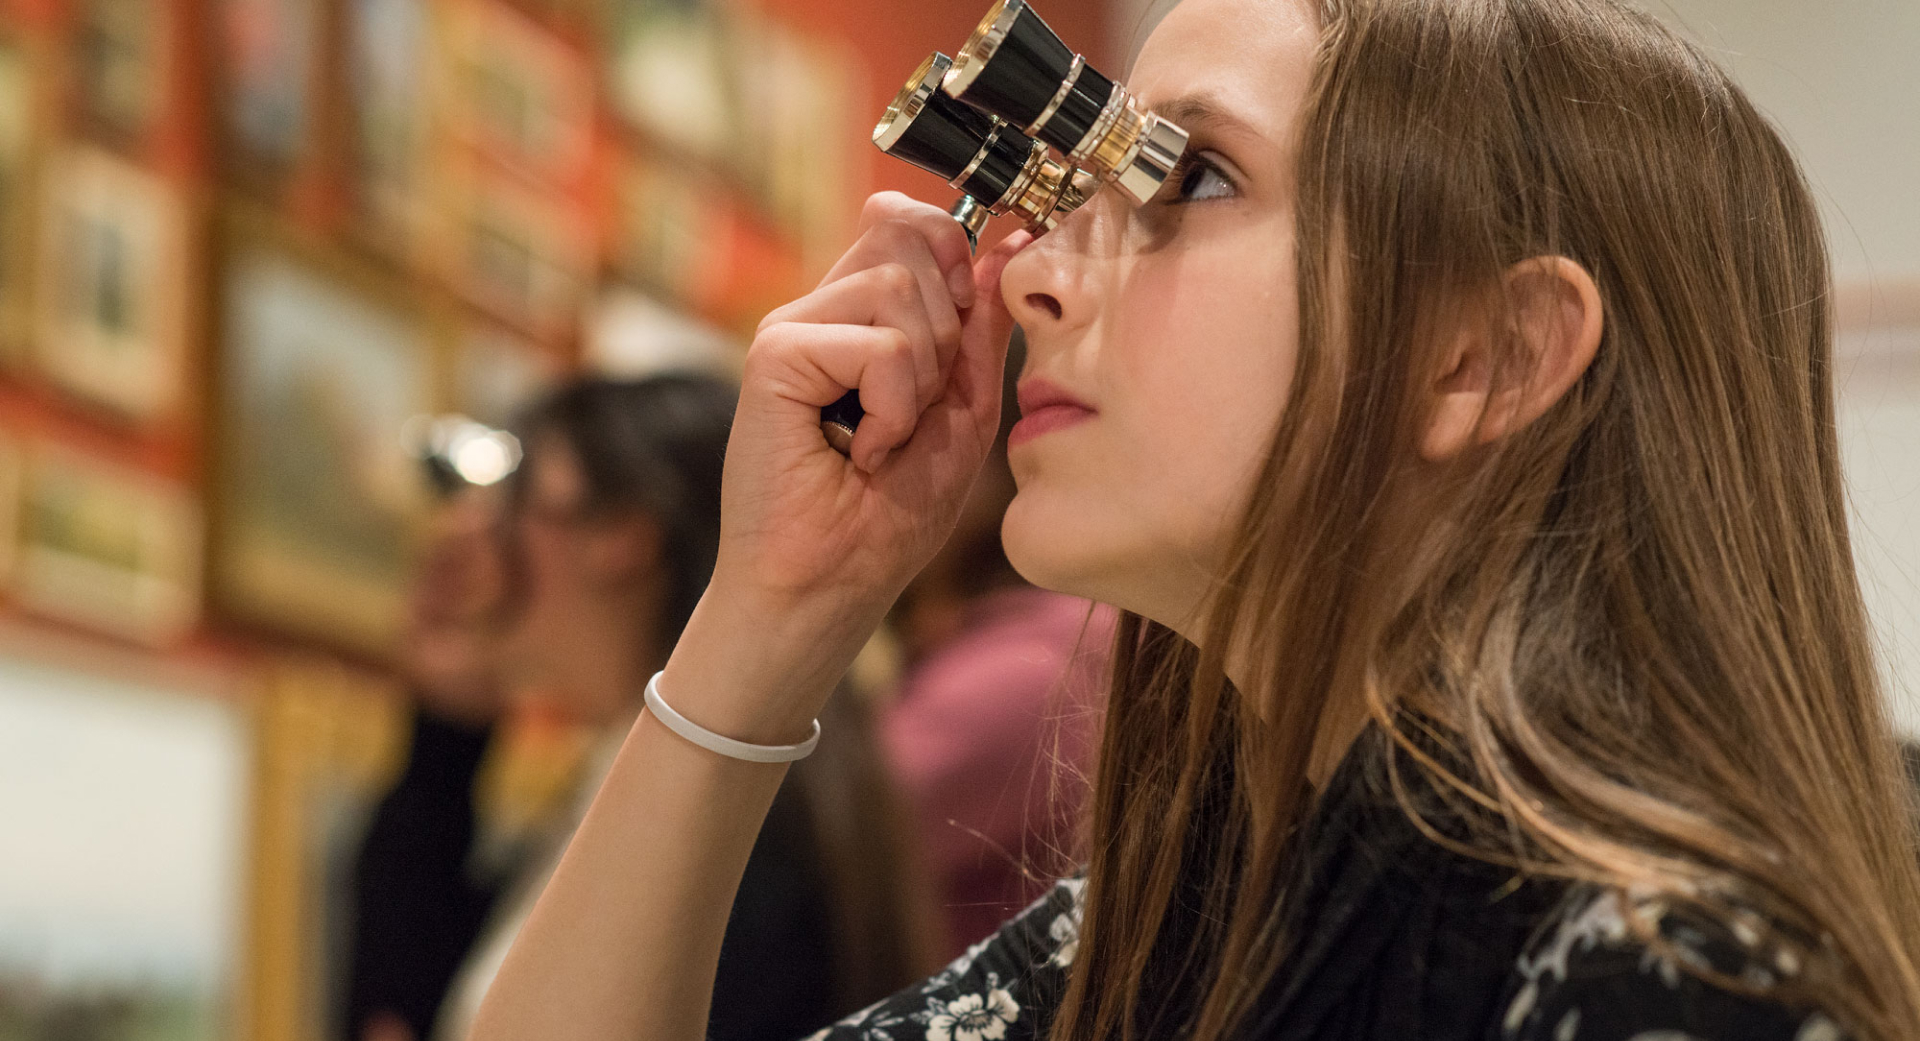 Young girls using special binoculars to look at framed art hung on a wall